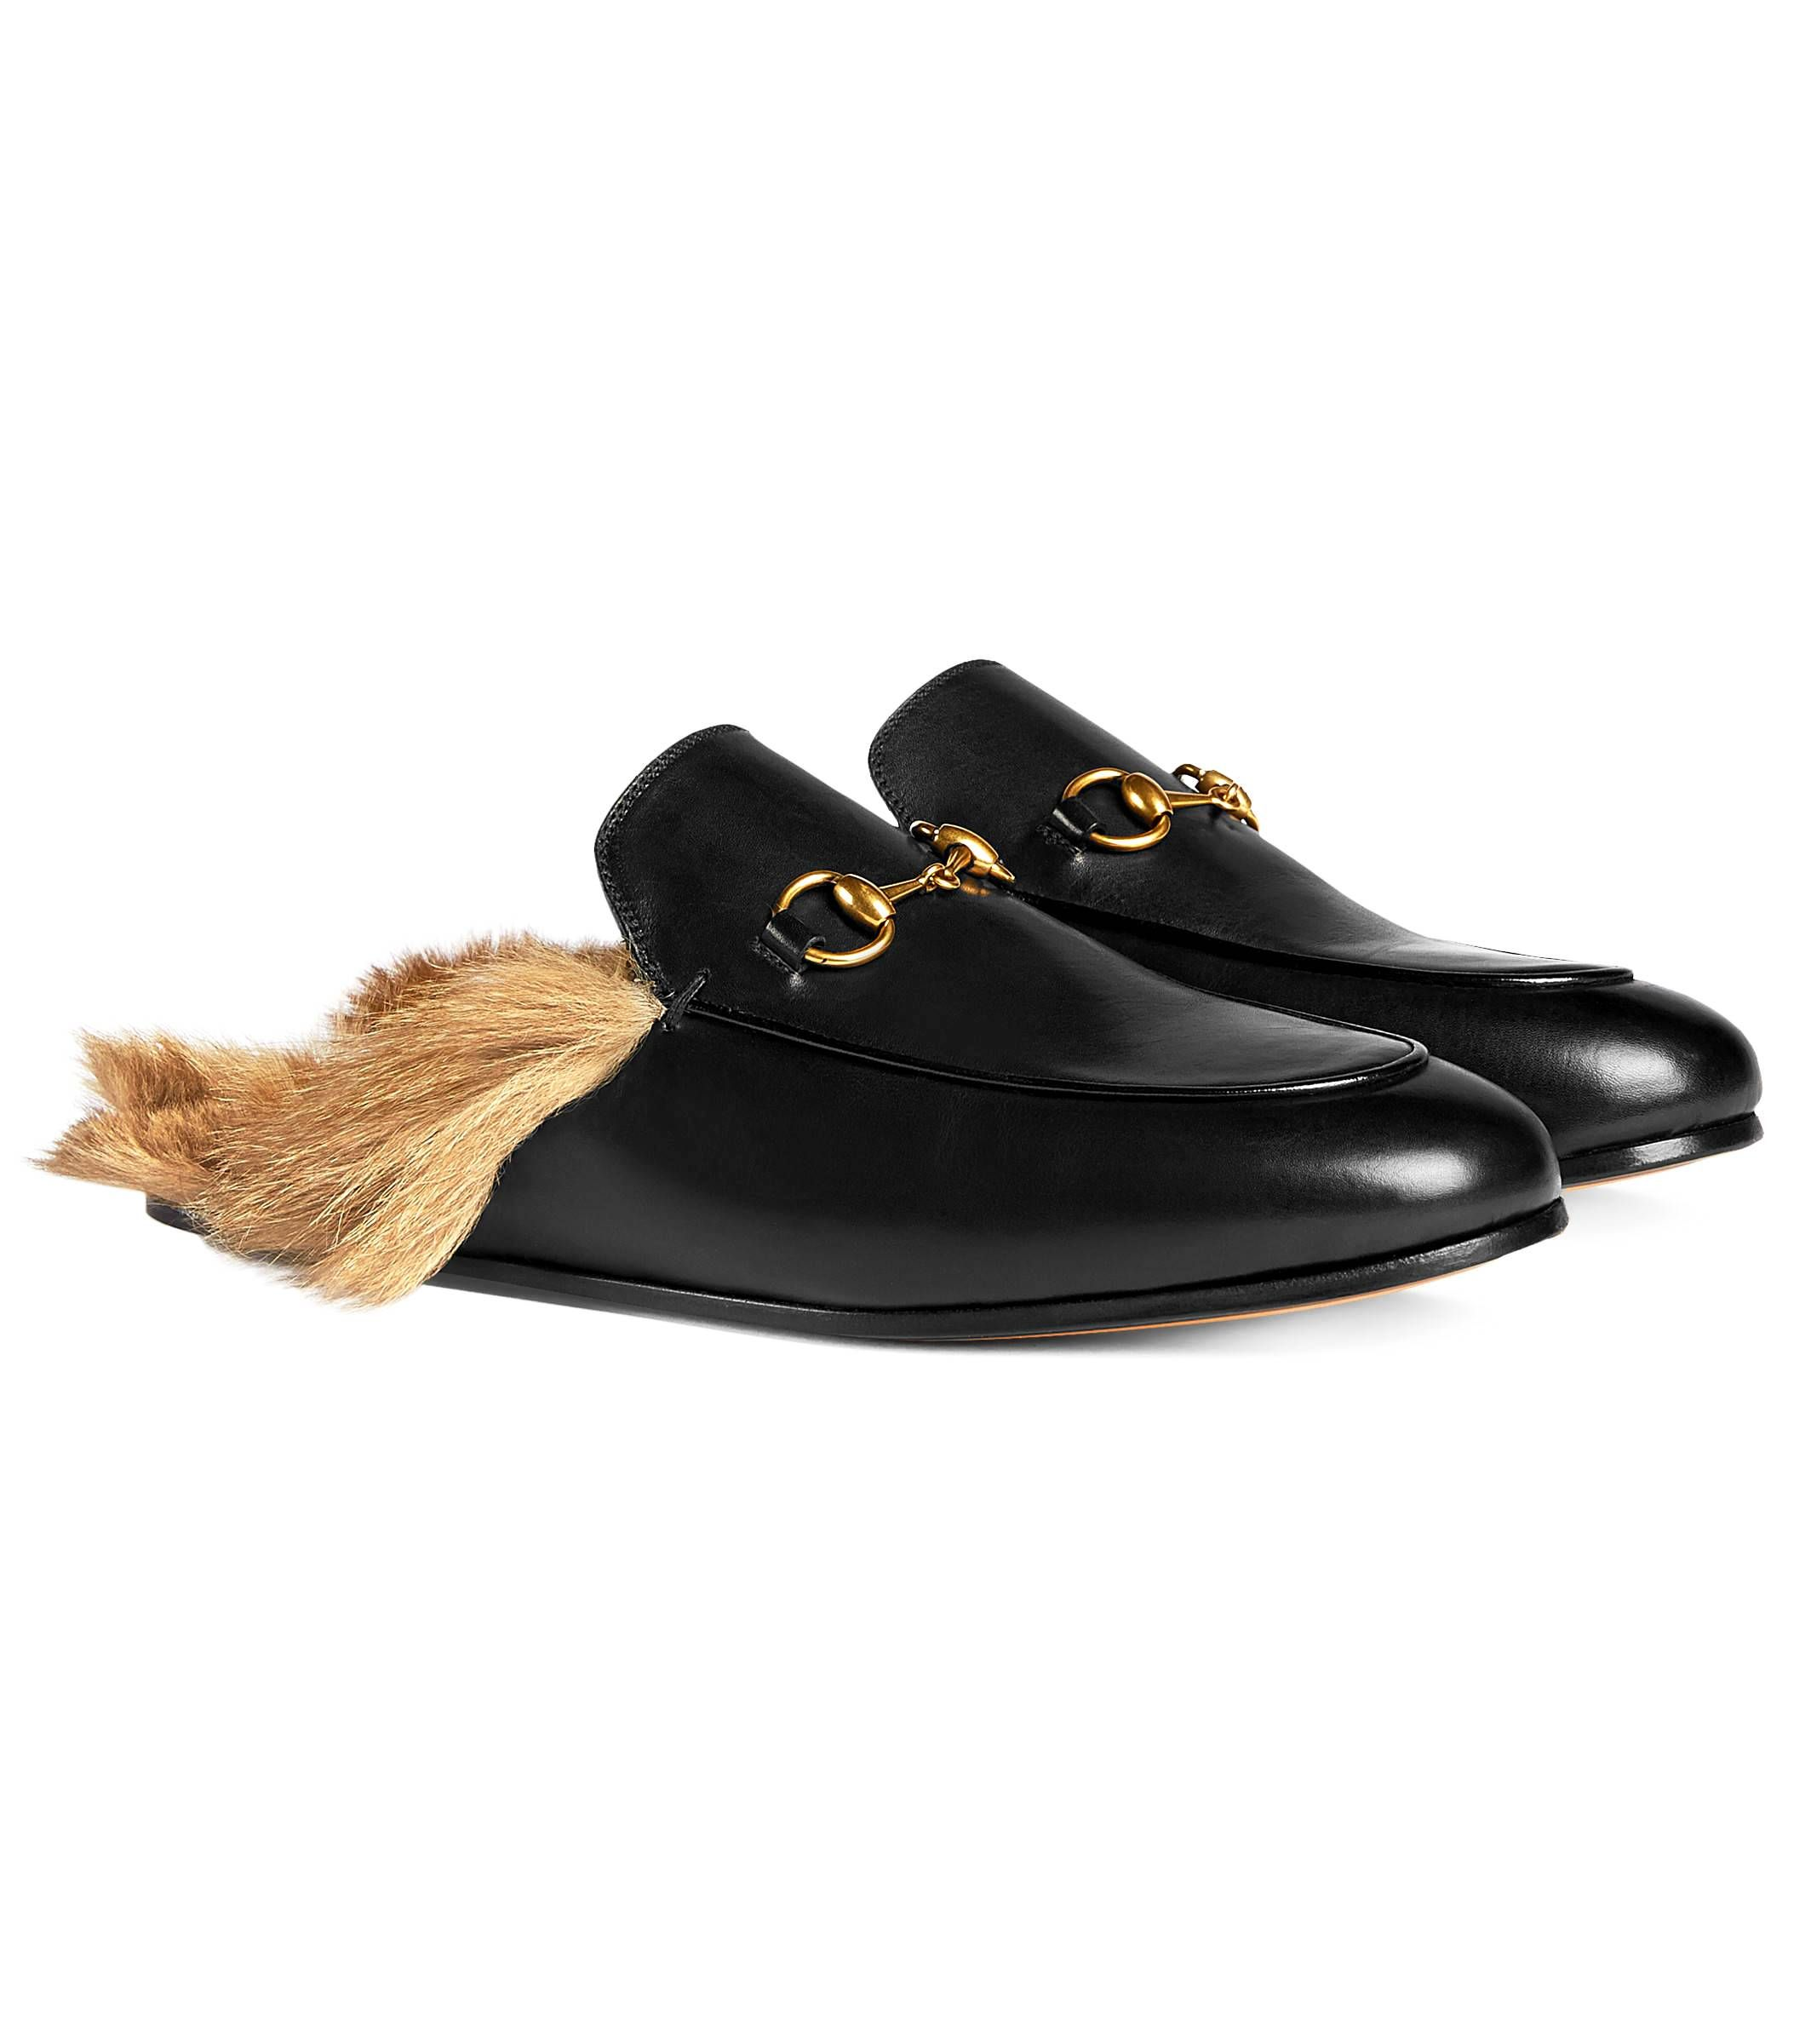 ae24e6e539c Gucci Princetown Leather Fur Slippers Women s Flip Flops Loafers Mules │  Represented By Sienna Miller